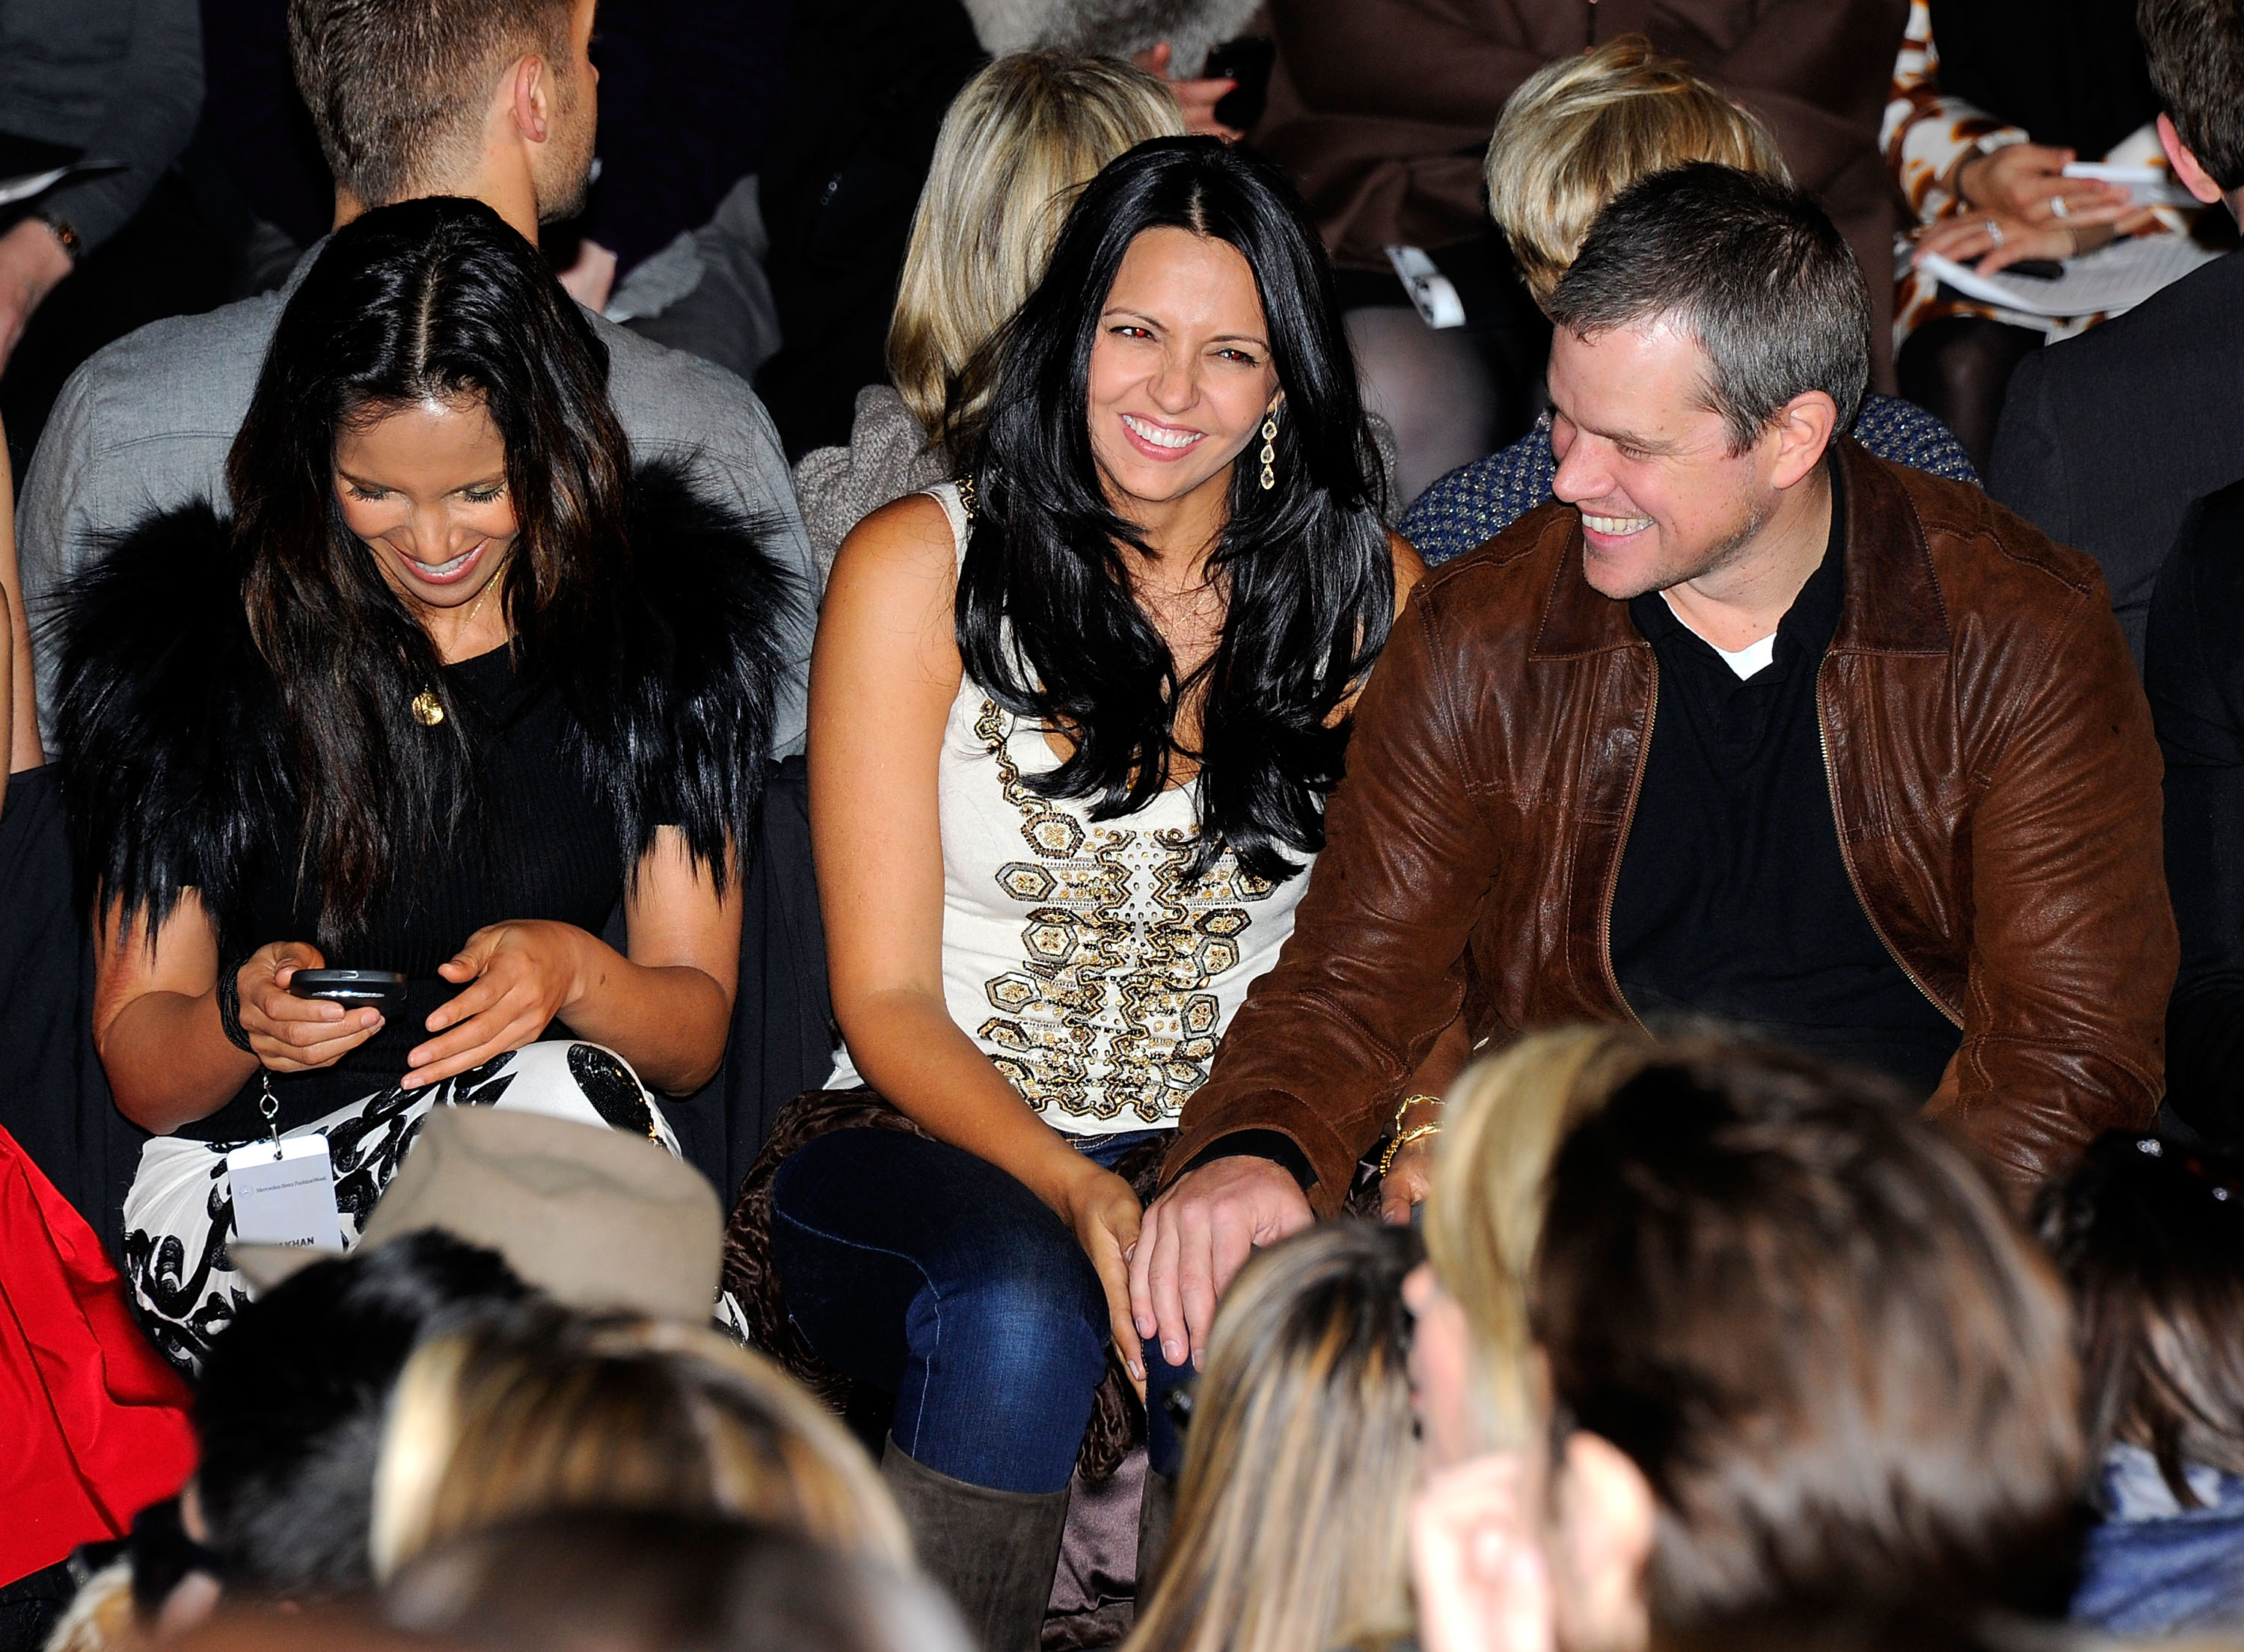 Matt Damon Spends Valentine's Day at Fashion Week With His Love, Lucy